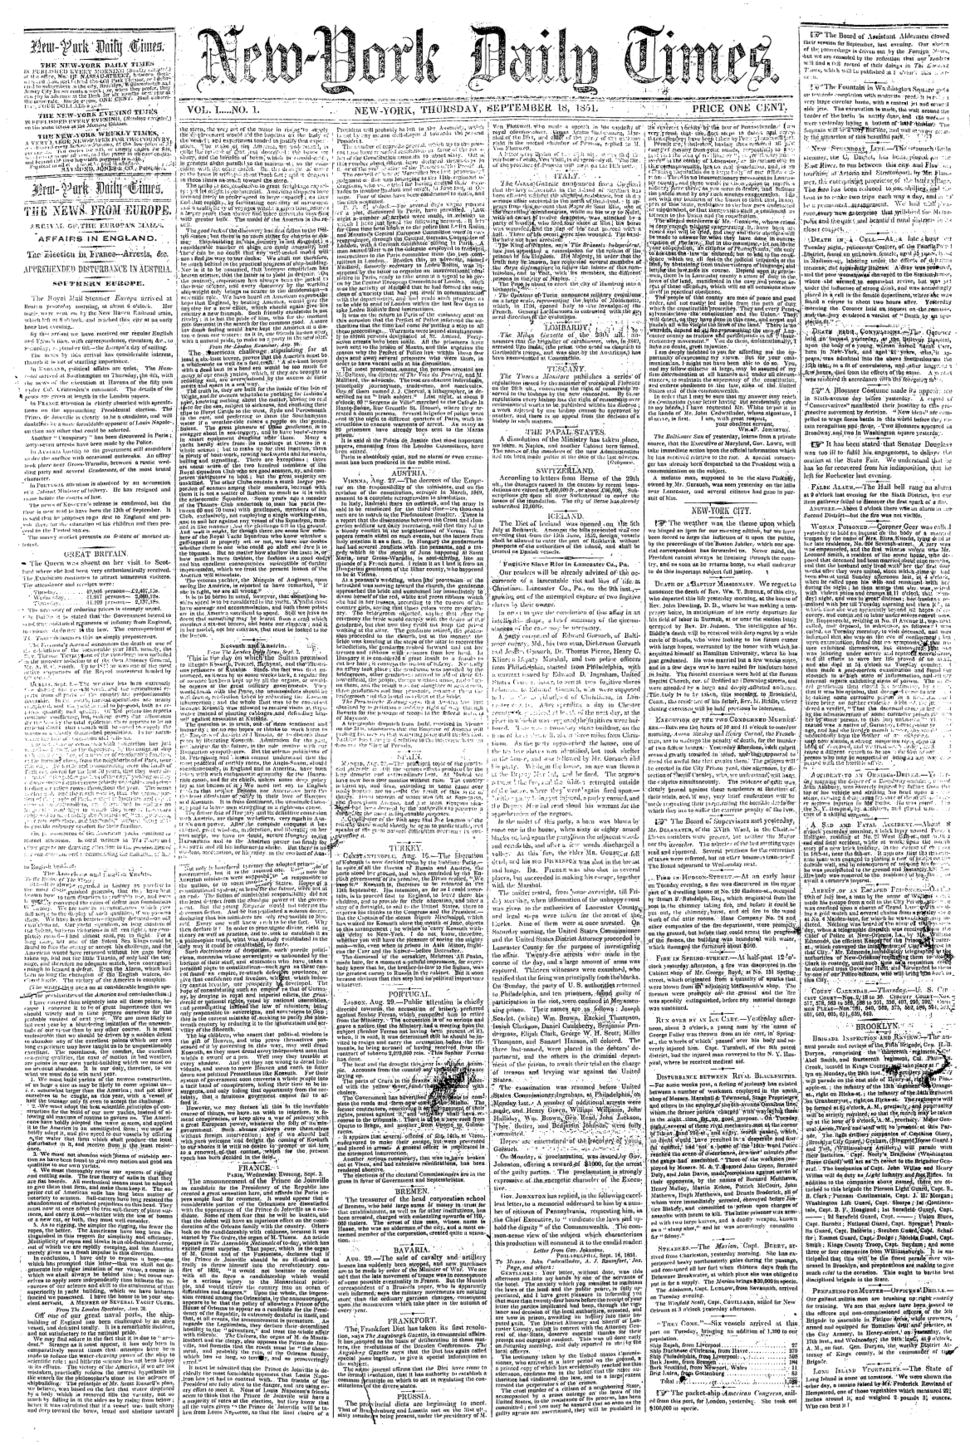 First NYTimes frontpage (1851-9-18)